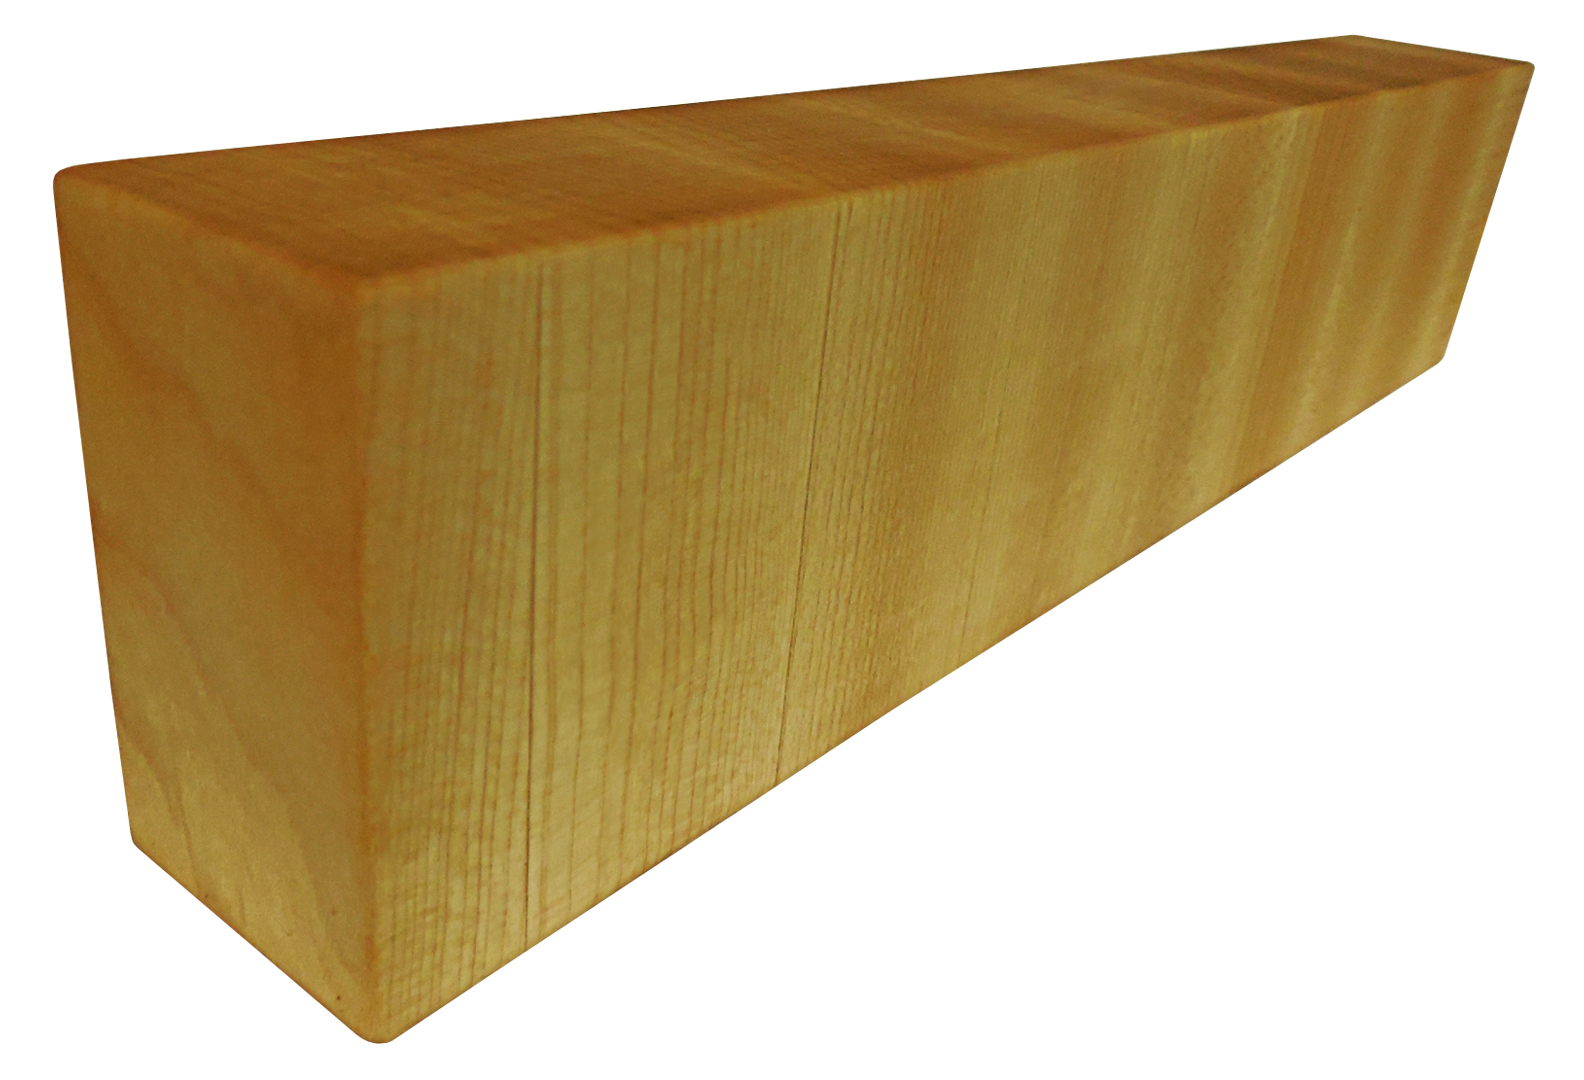 eased-edge-butcher-block-f.jpg